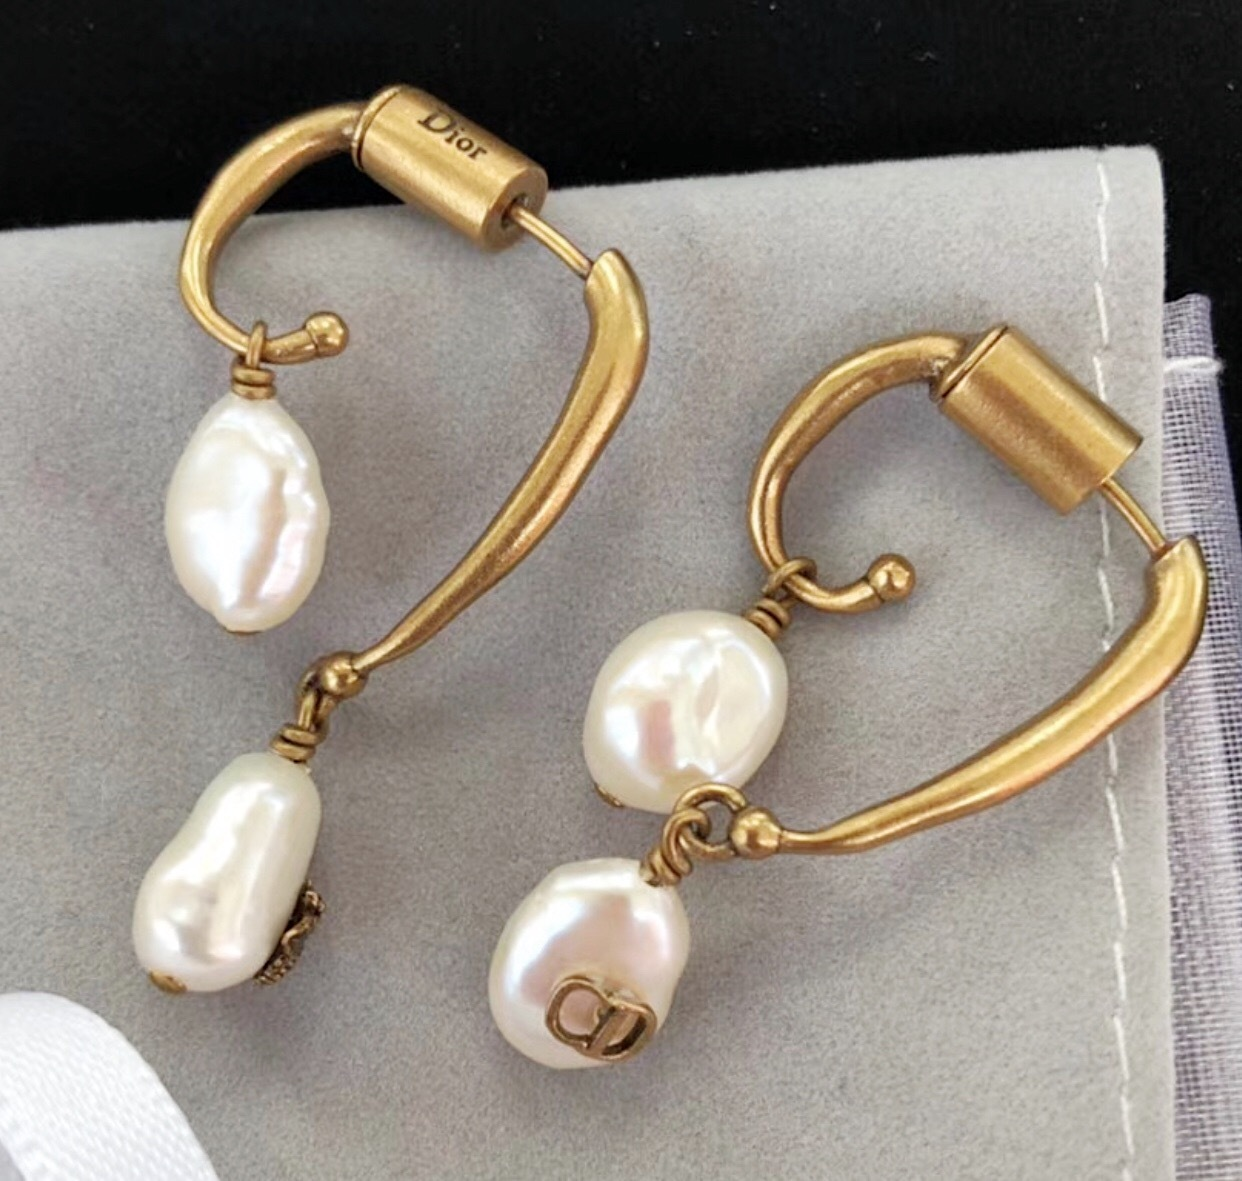 Authentic Christian Dior 2017 Wasp Double Pearl Dangle Drop Earrings Aged Gold